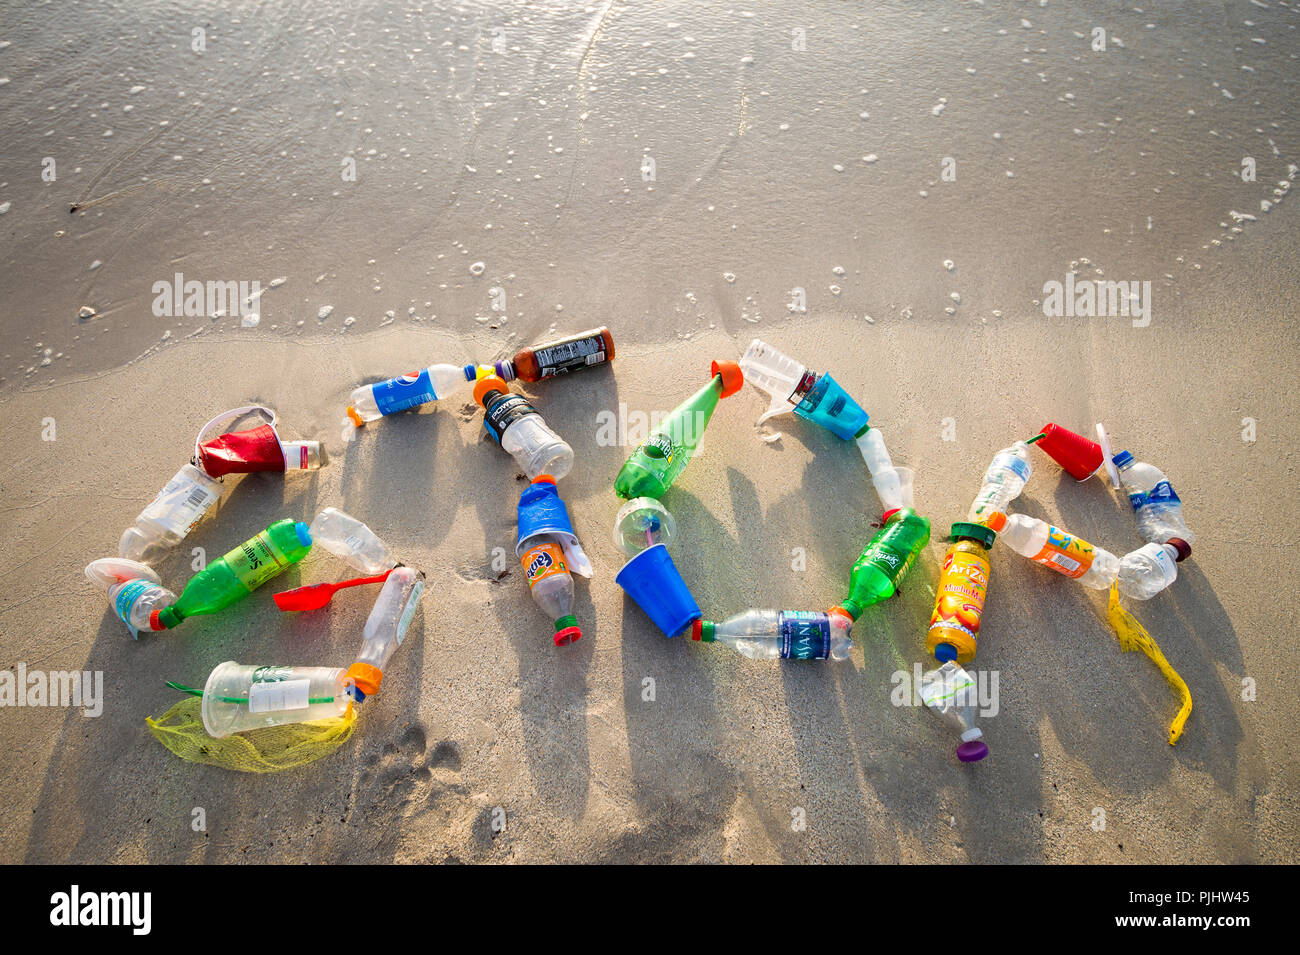 MIAMI - CIRCA JULY, 2018: 'STOP' spelled out in the sand using garbage collected on Miami beach and in the sea as a message for people to take action Stock Photo